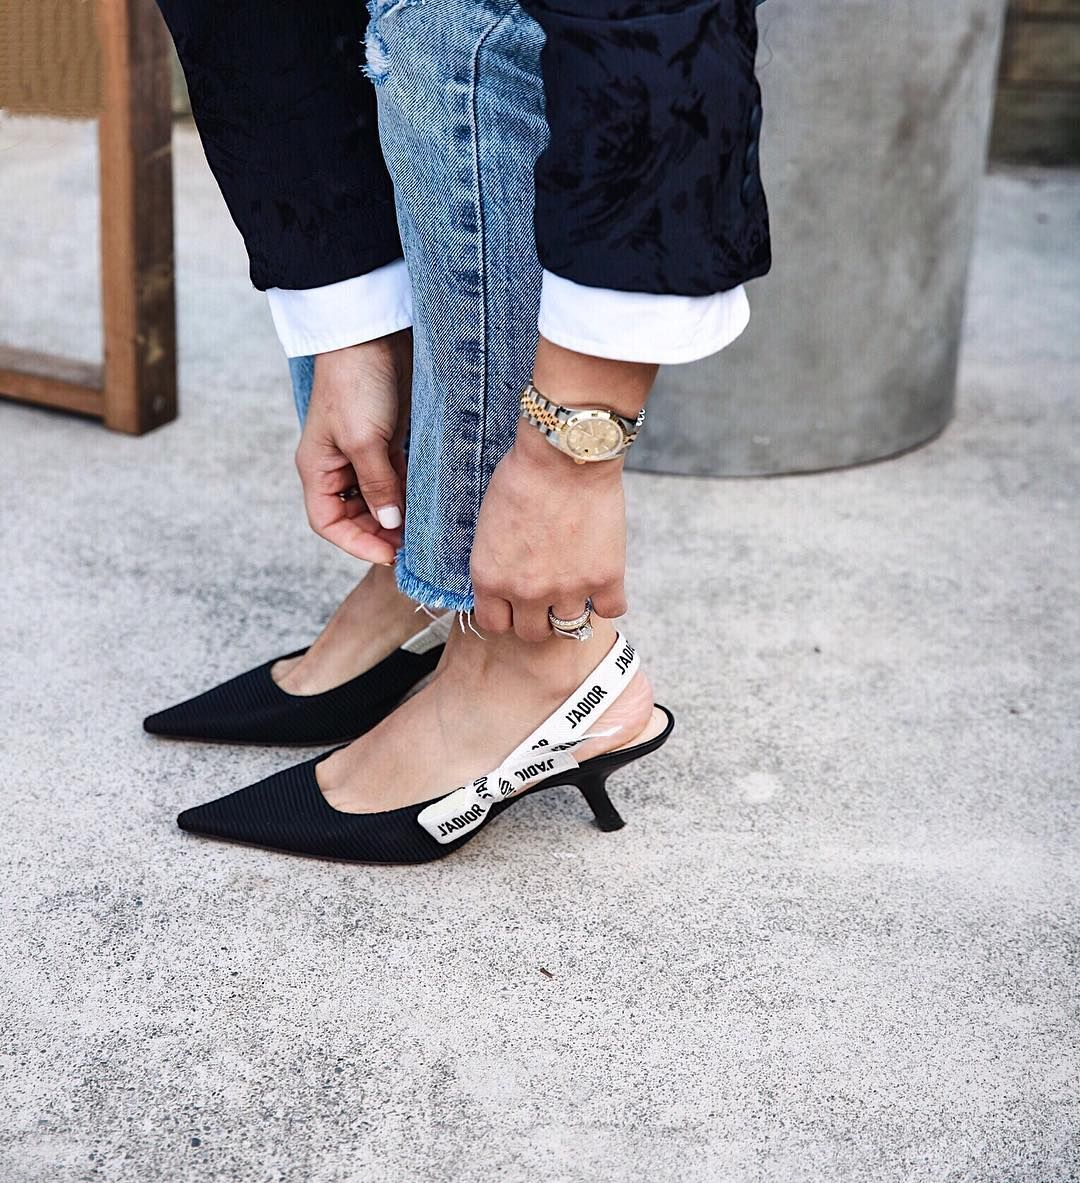 Image result for slingback heels